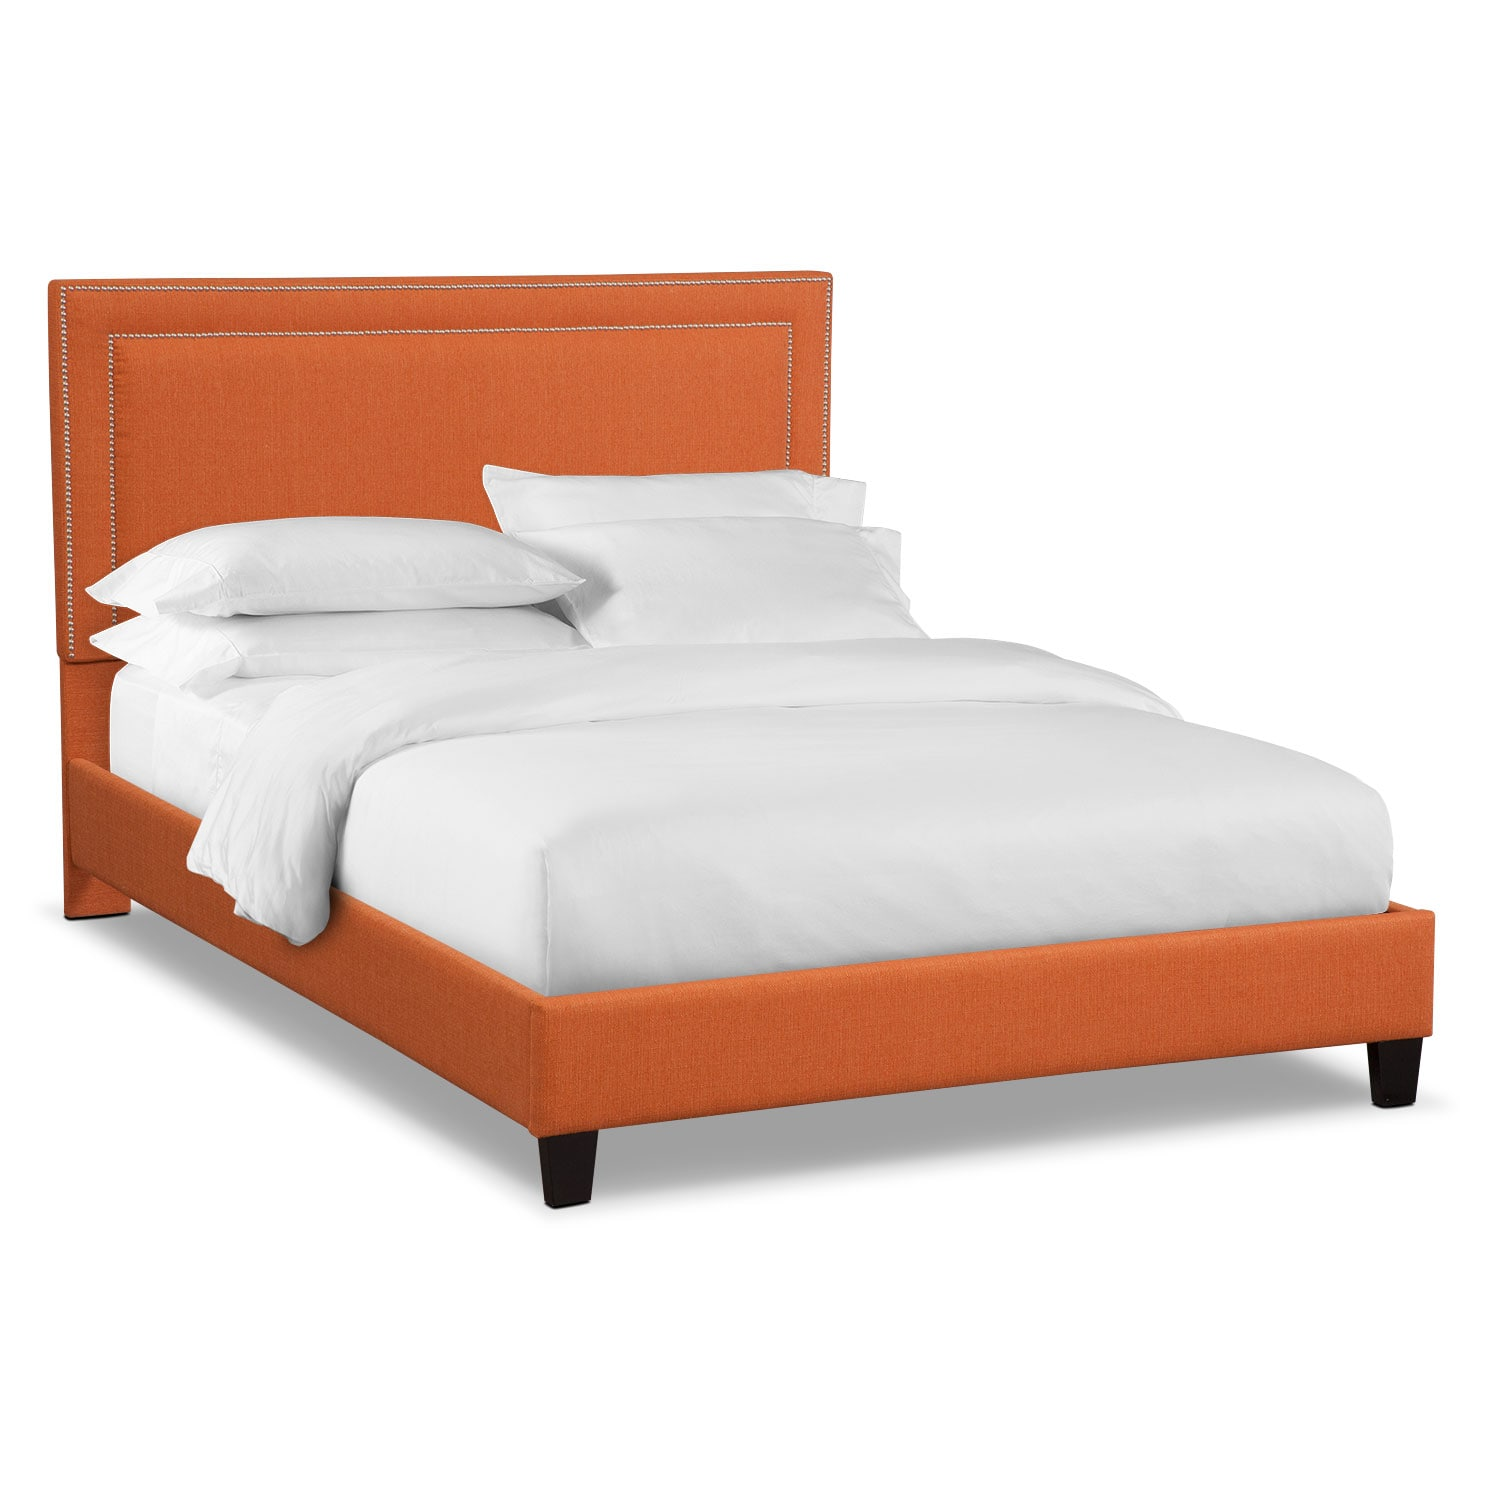 Natalie Queen Upholstered Bed - Orange